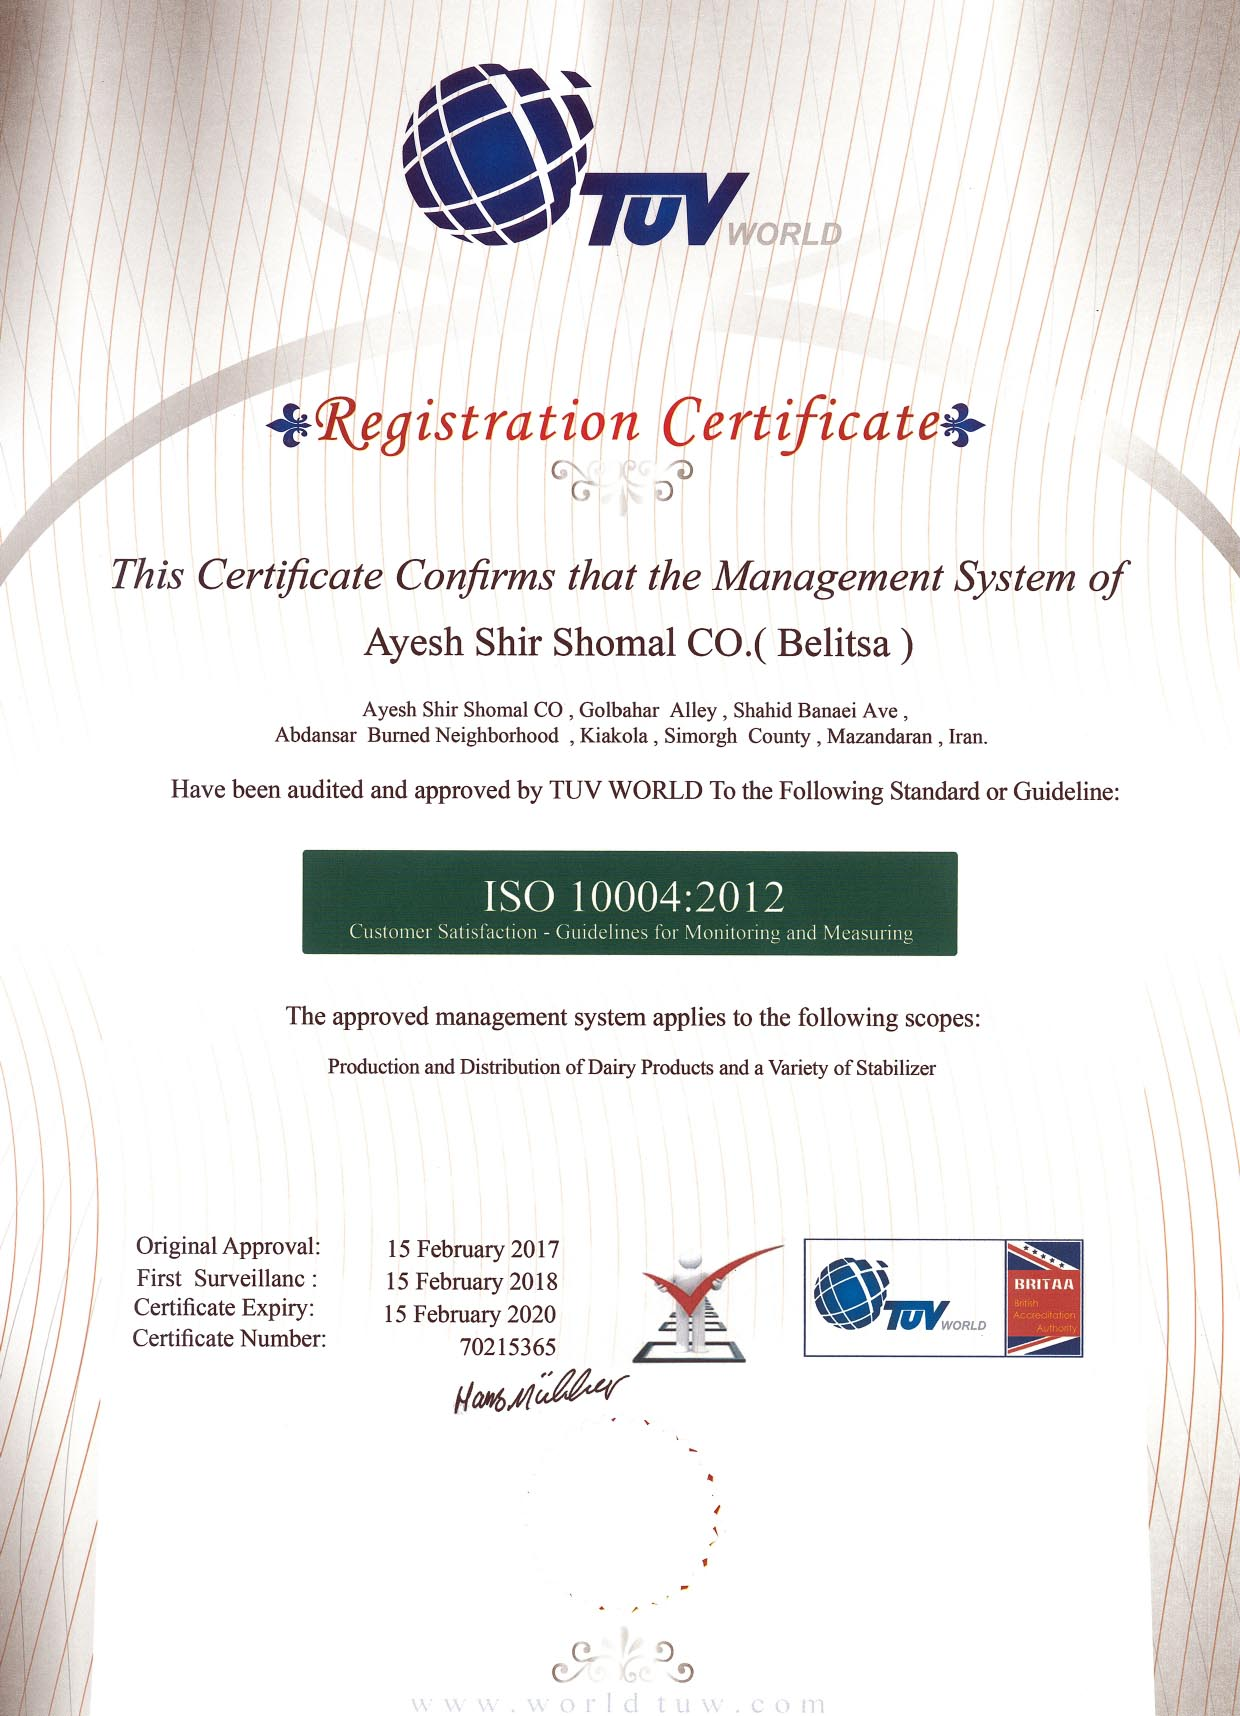 Ayesh Shir Shomal / belitsa / stabilizer and emulsifier production and supply of dairy industry